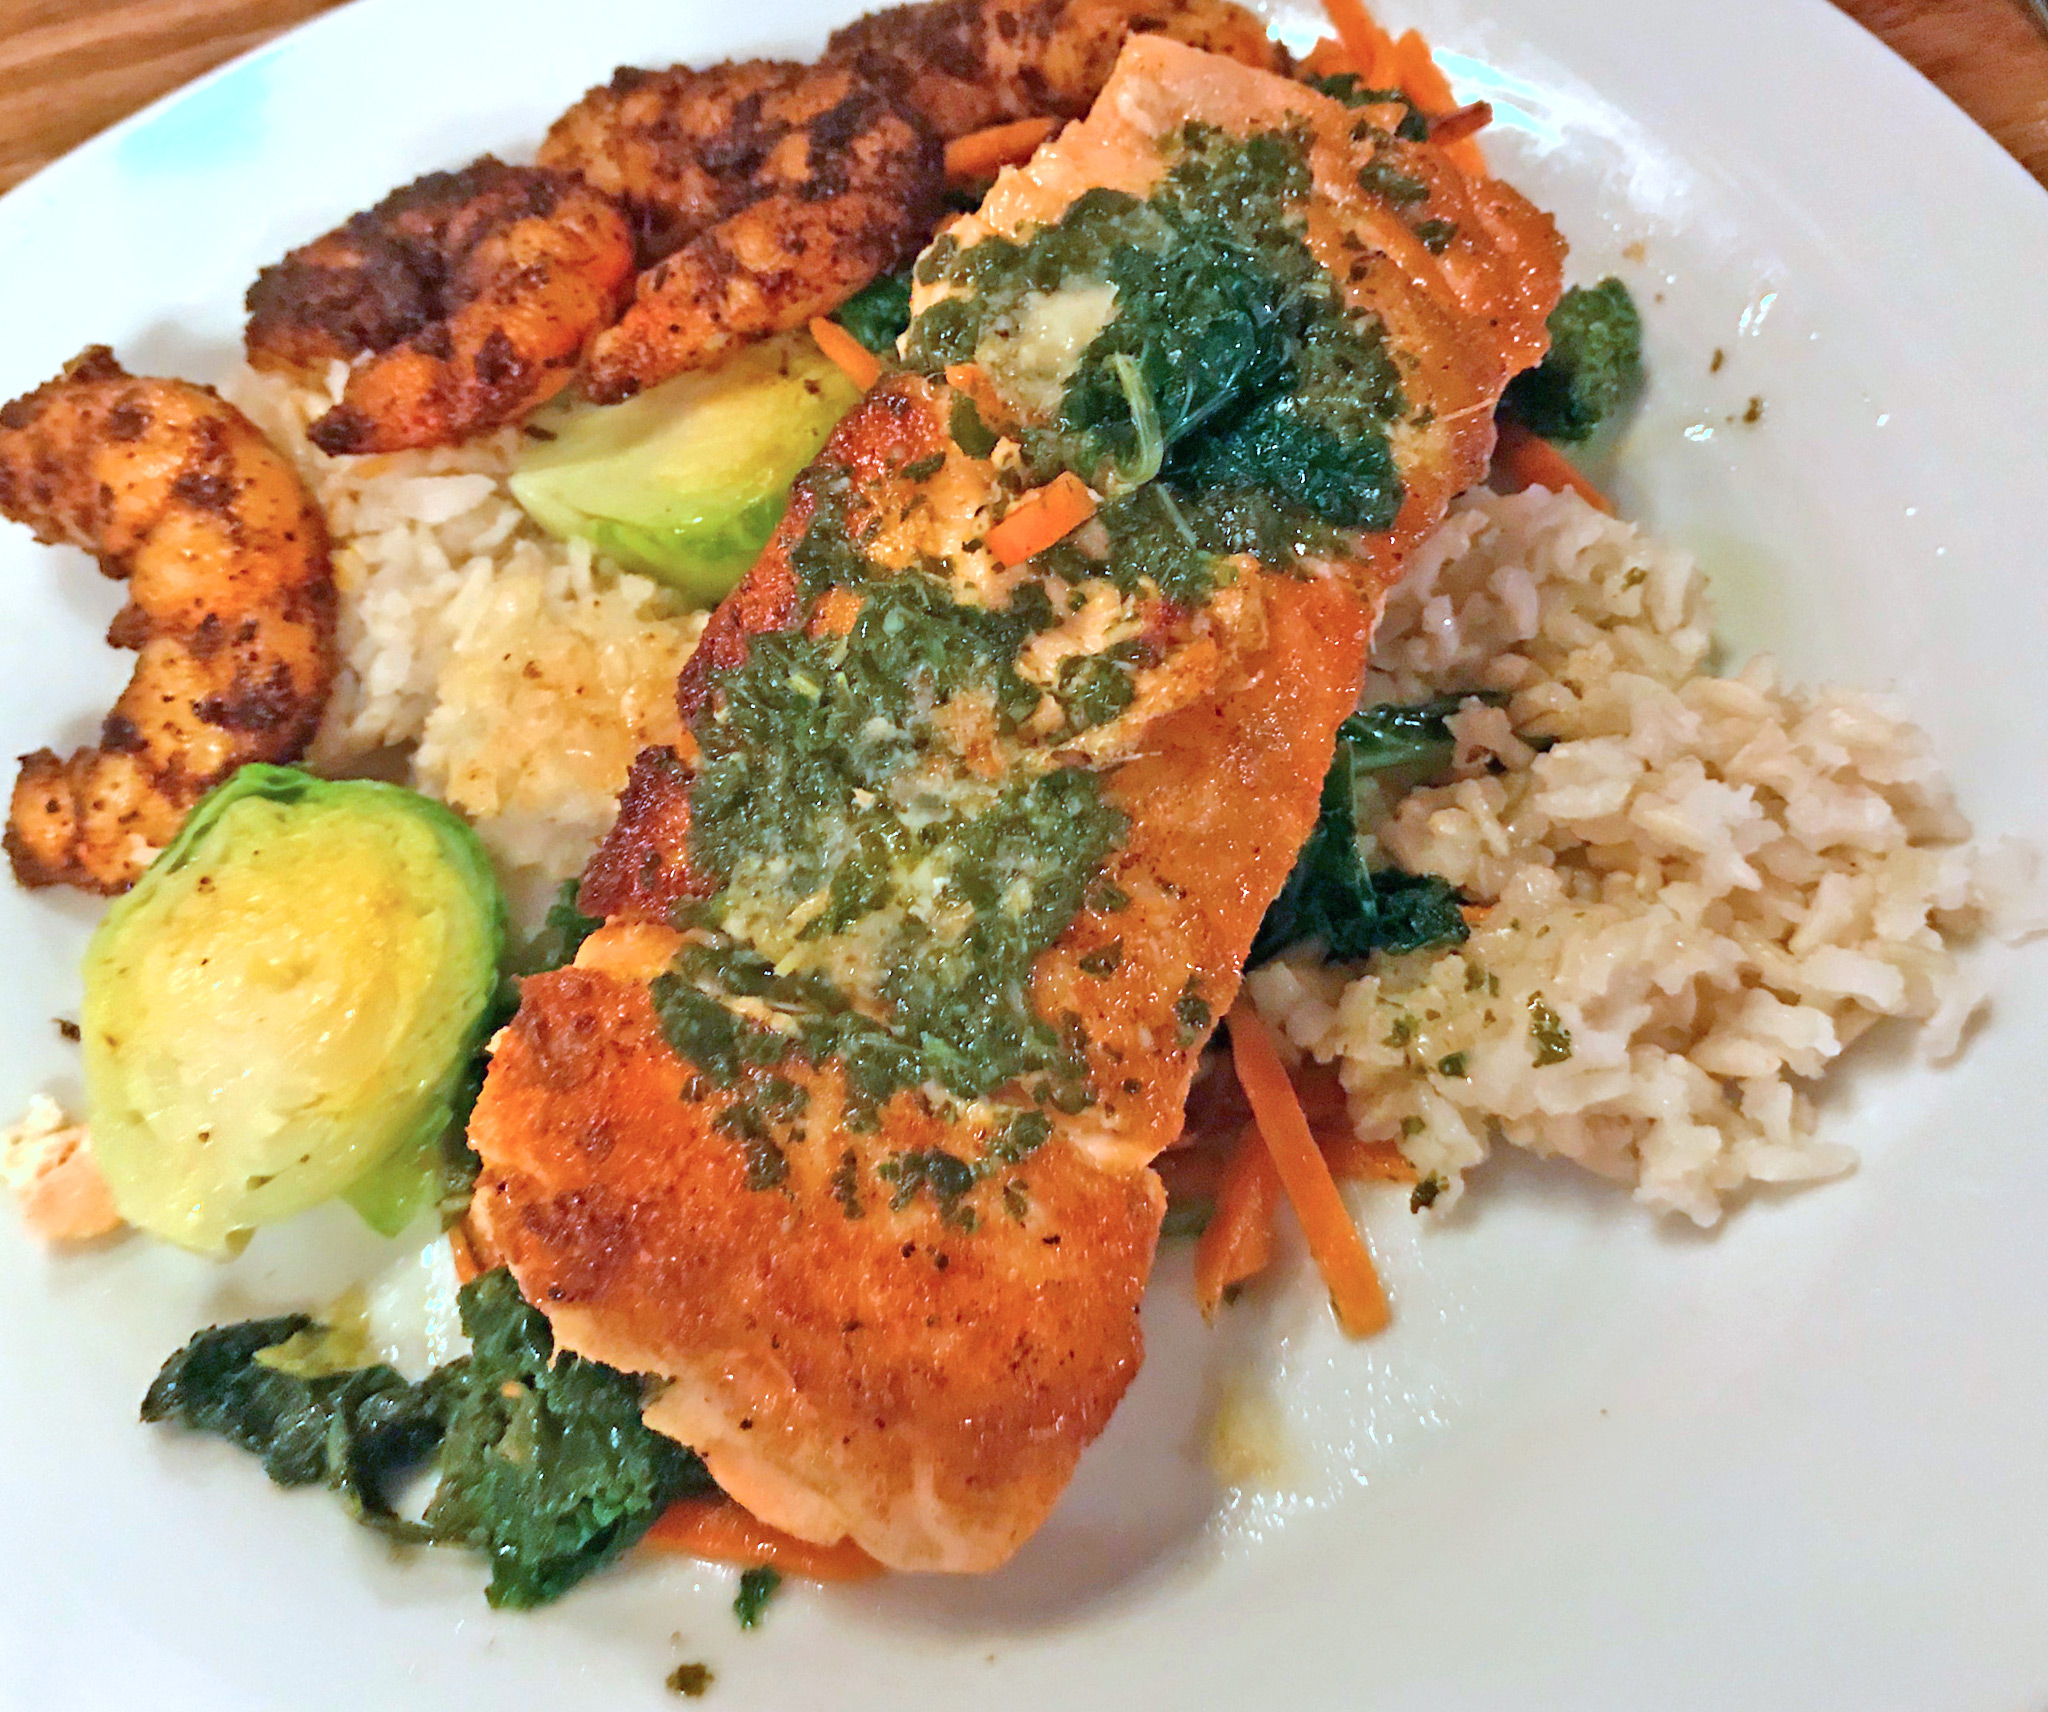 Seared Salmon with Added Blackened Shrimp